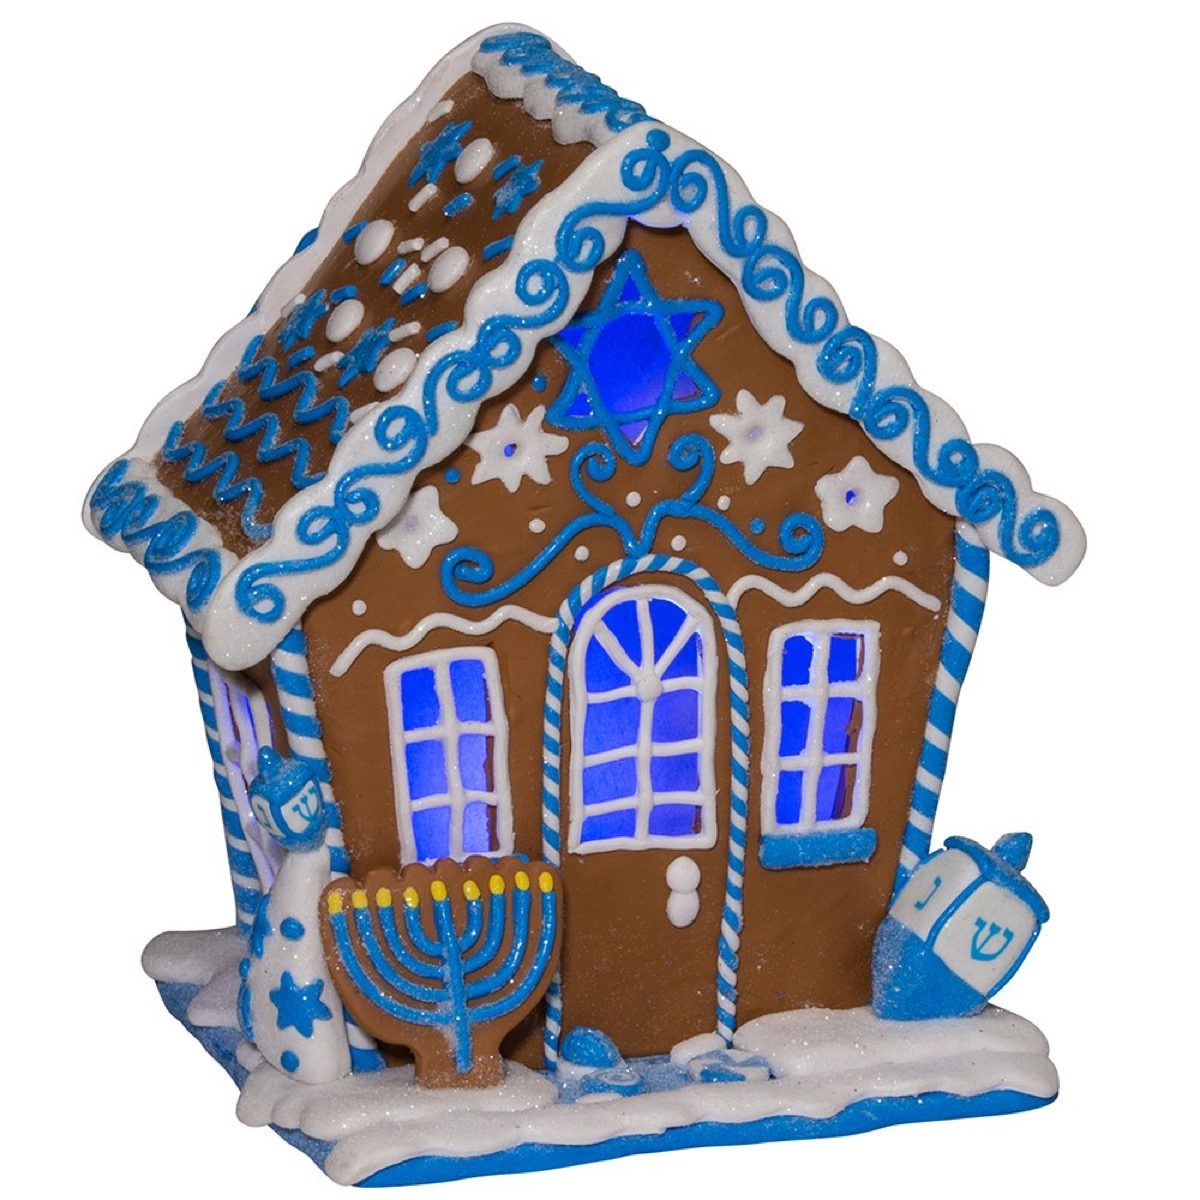 gingerbread house with blue and white icing and menorah and dreidel decorations, hanukkah decorations